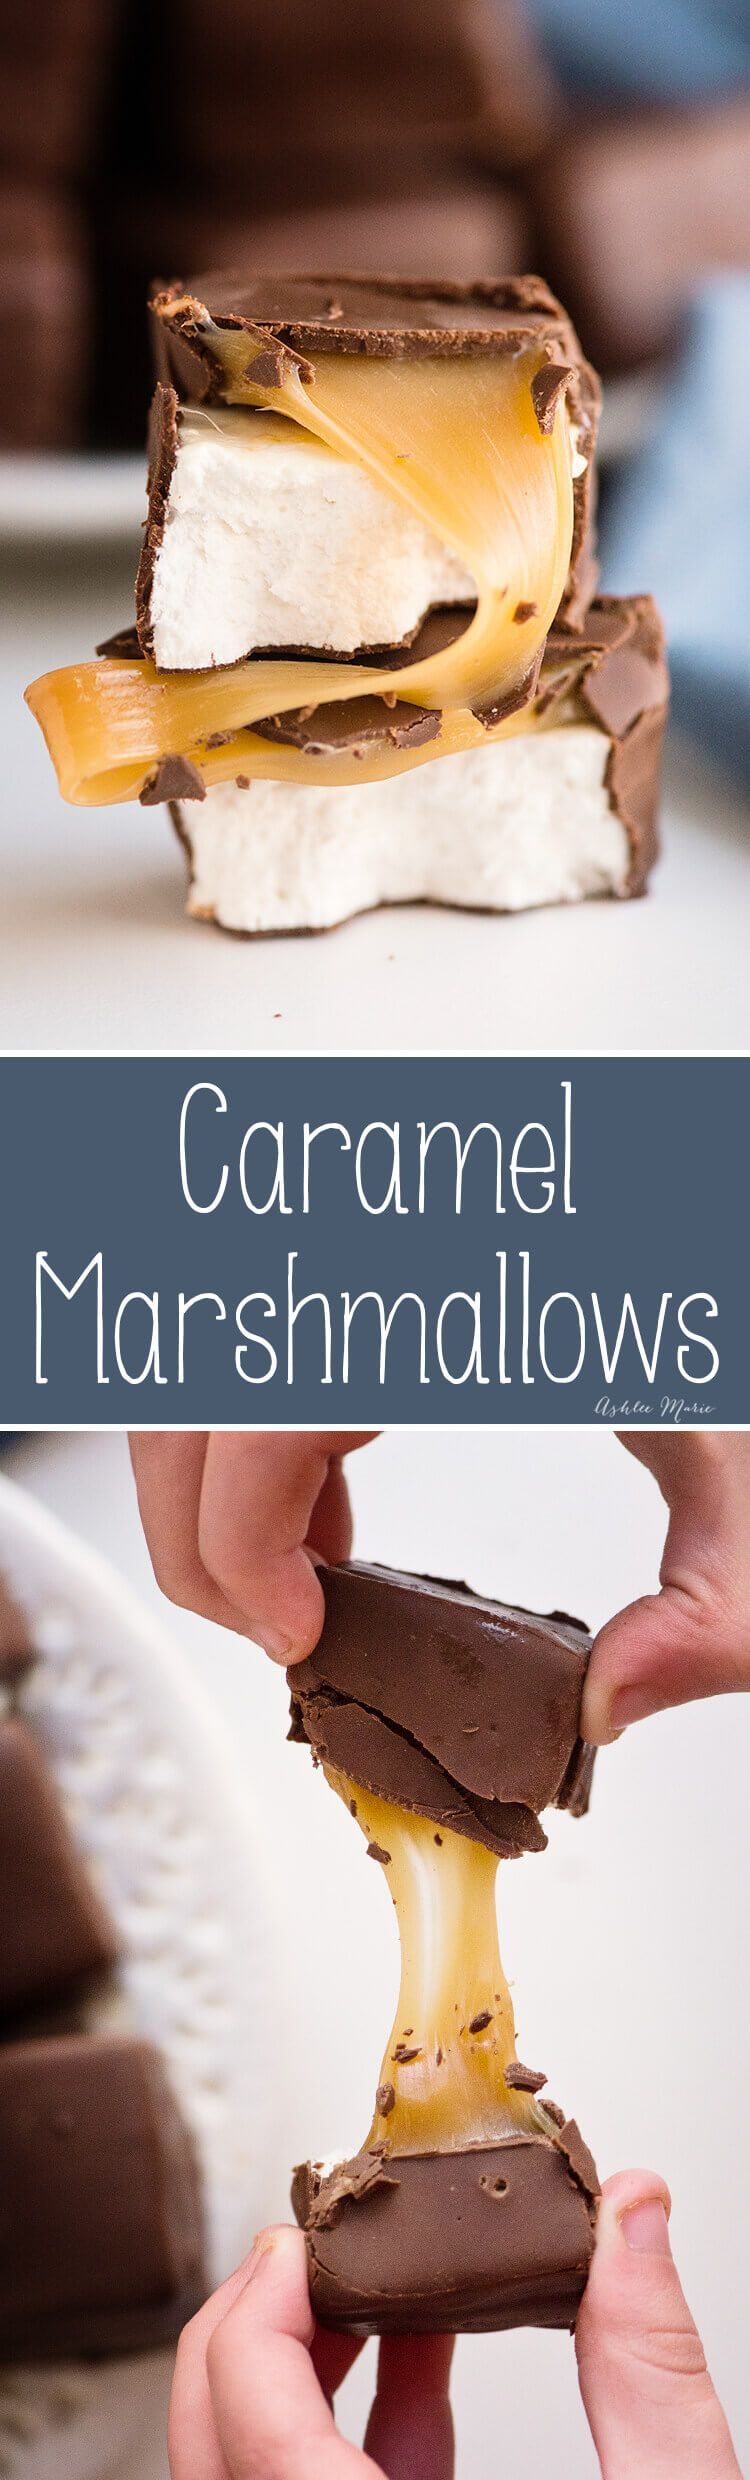 Chocolate Covered Caramel Marshmallow recipe – plus 21 more AMAZING caramel recipes via @ashleemariecakes #marshmallows